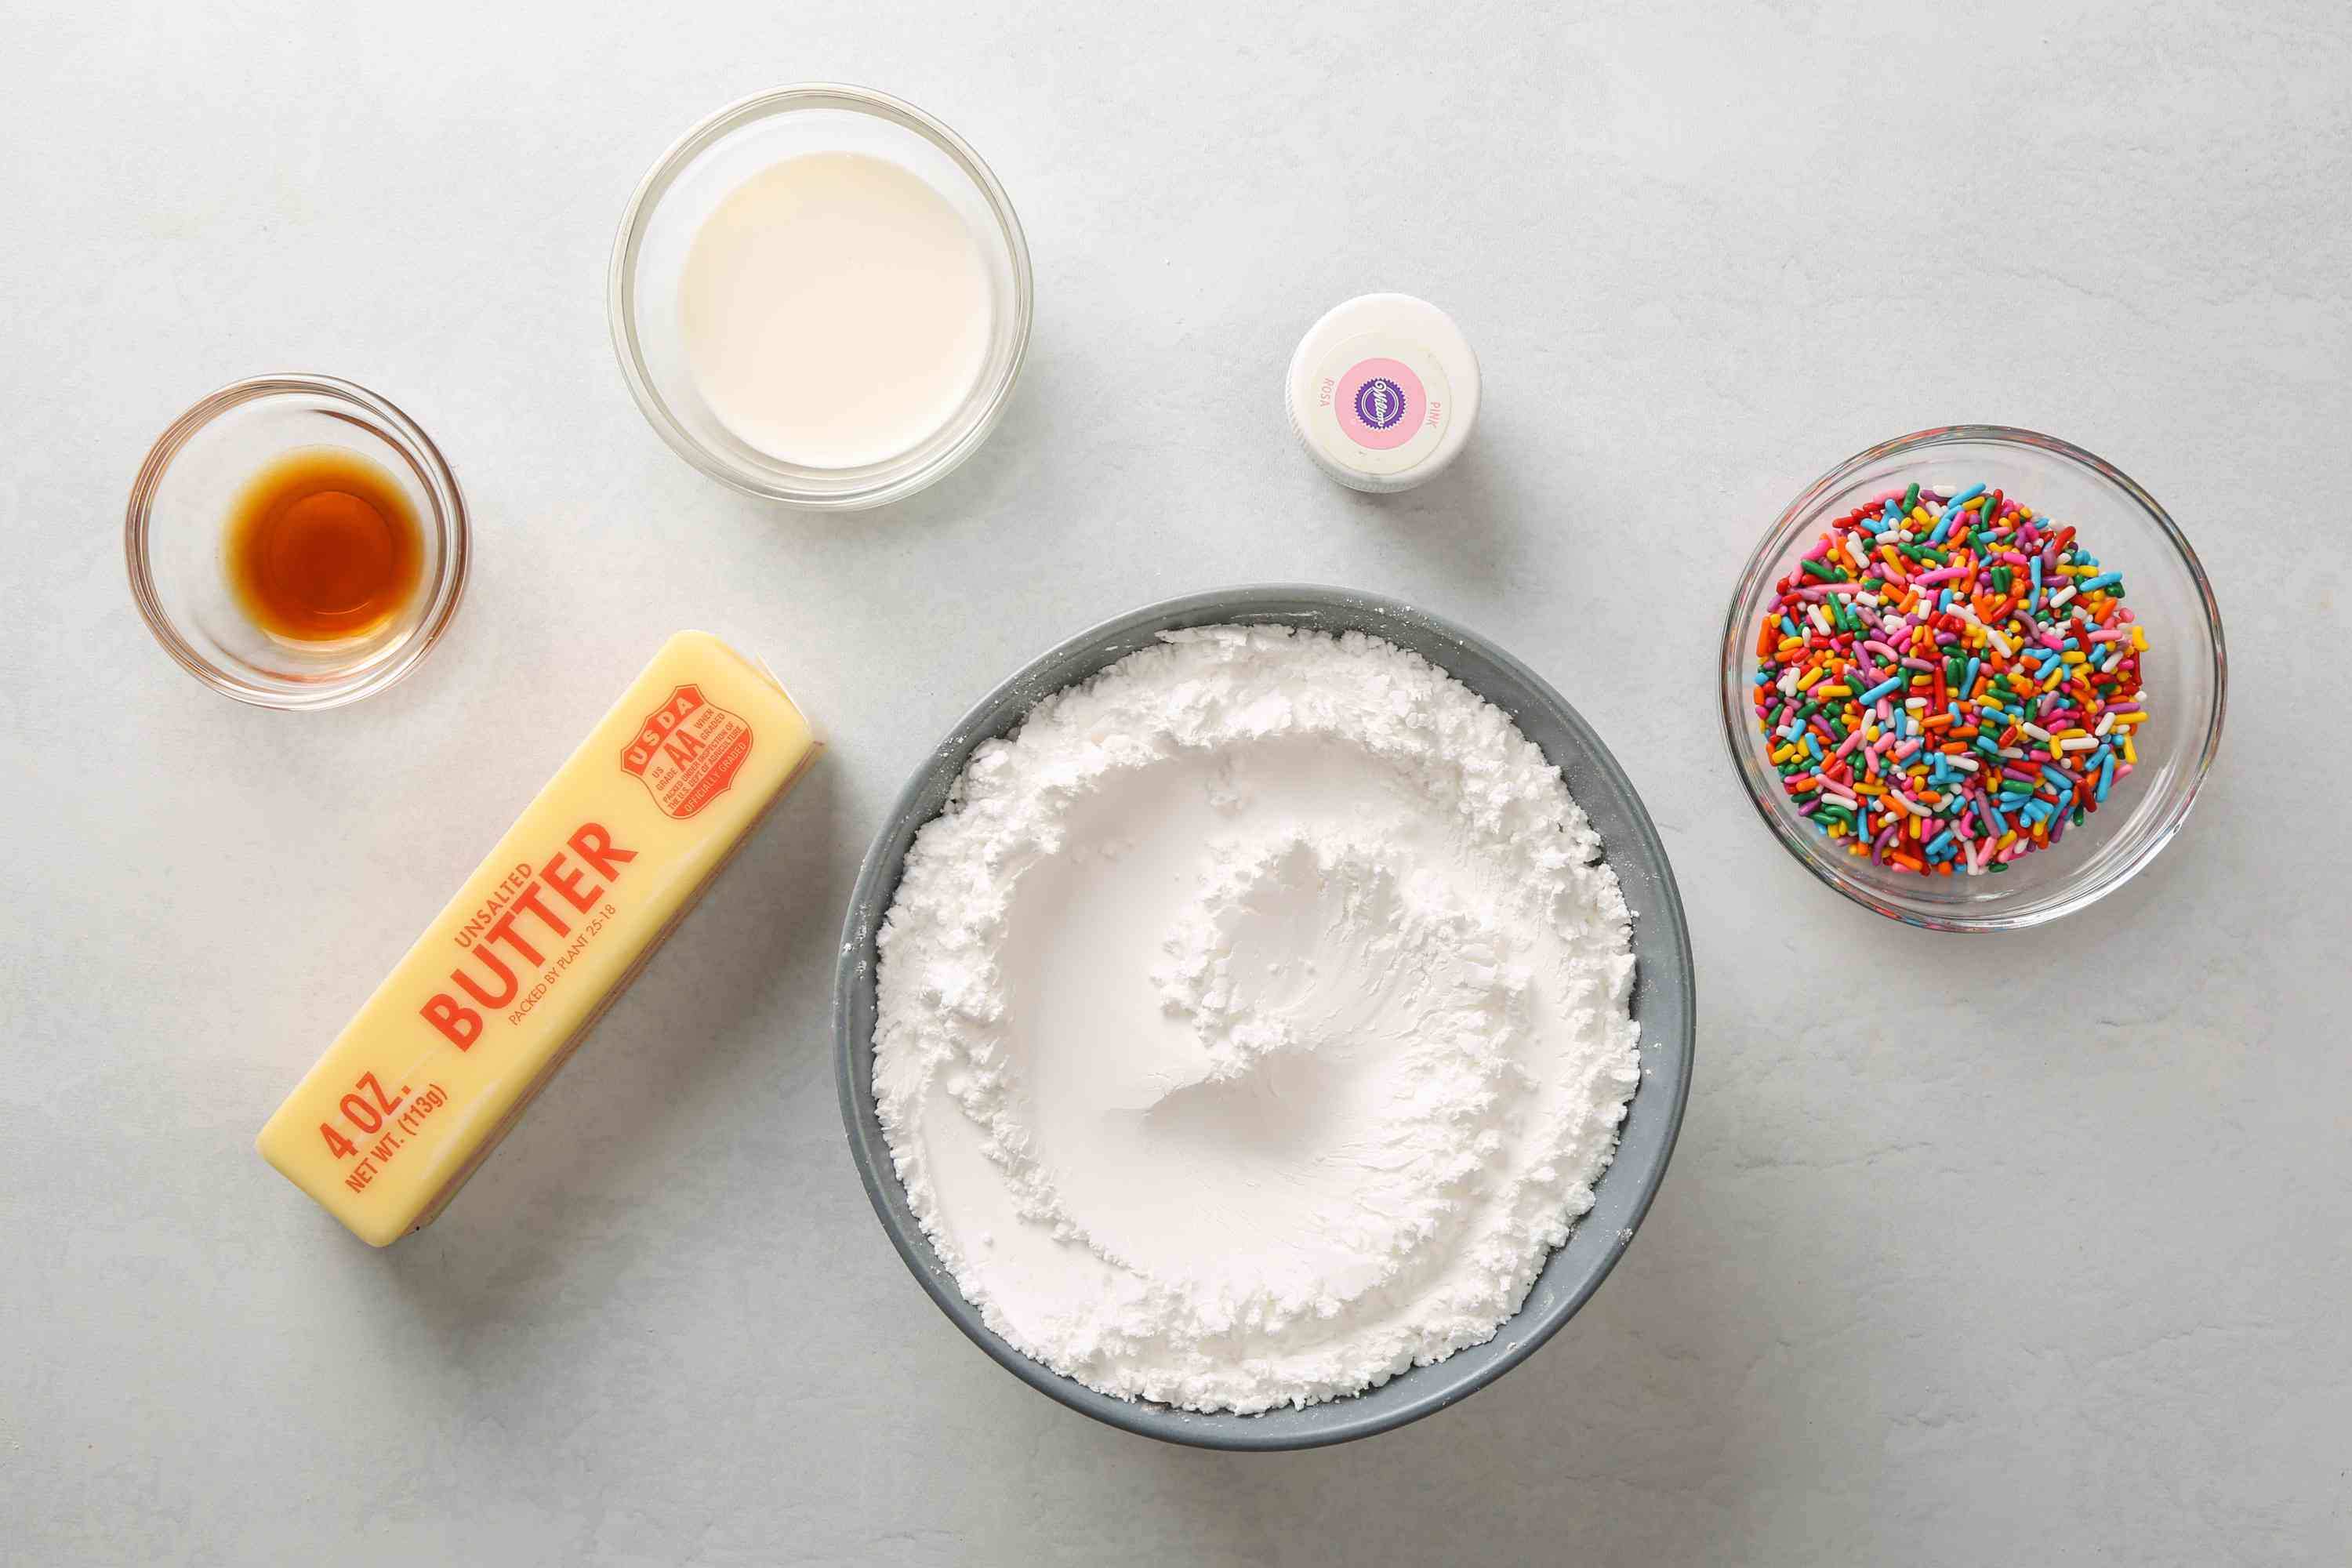 Ingredients for Lofthouse Cookie frosting